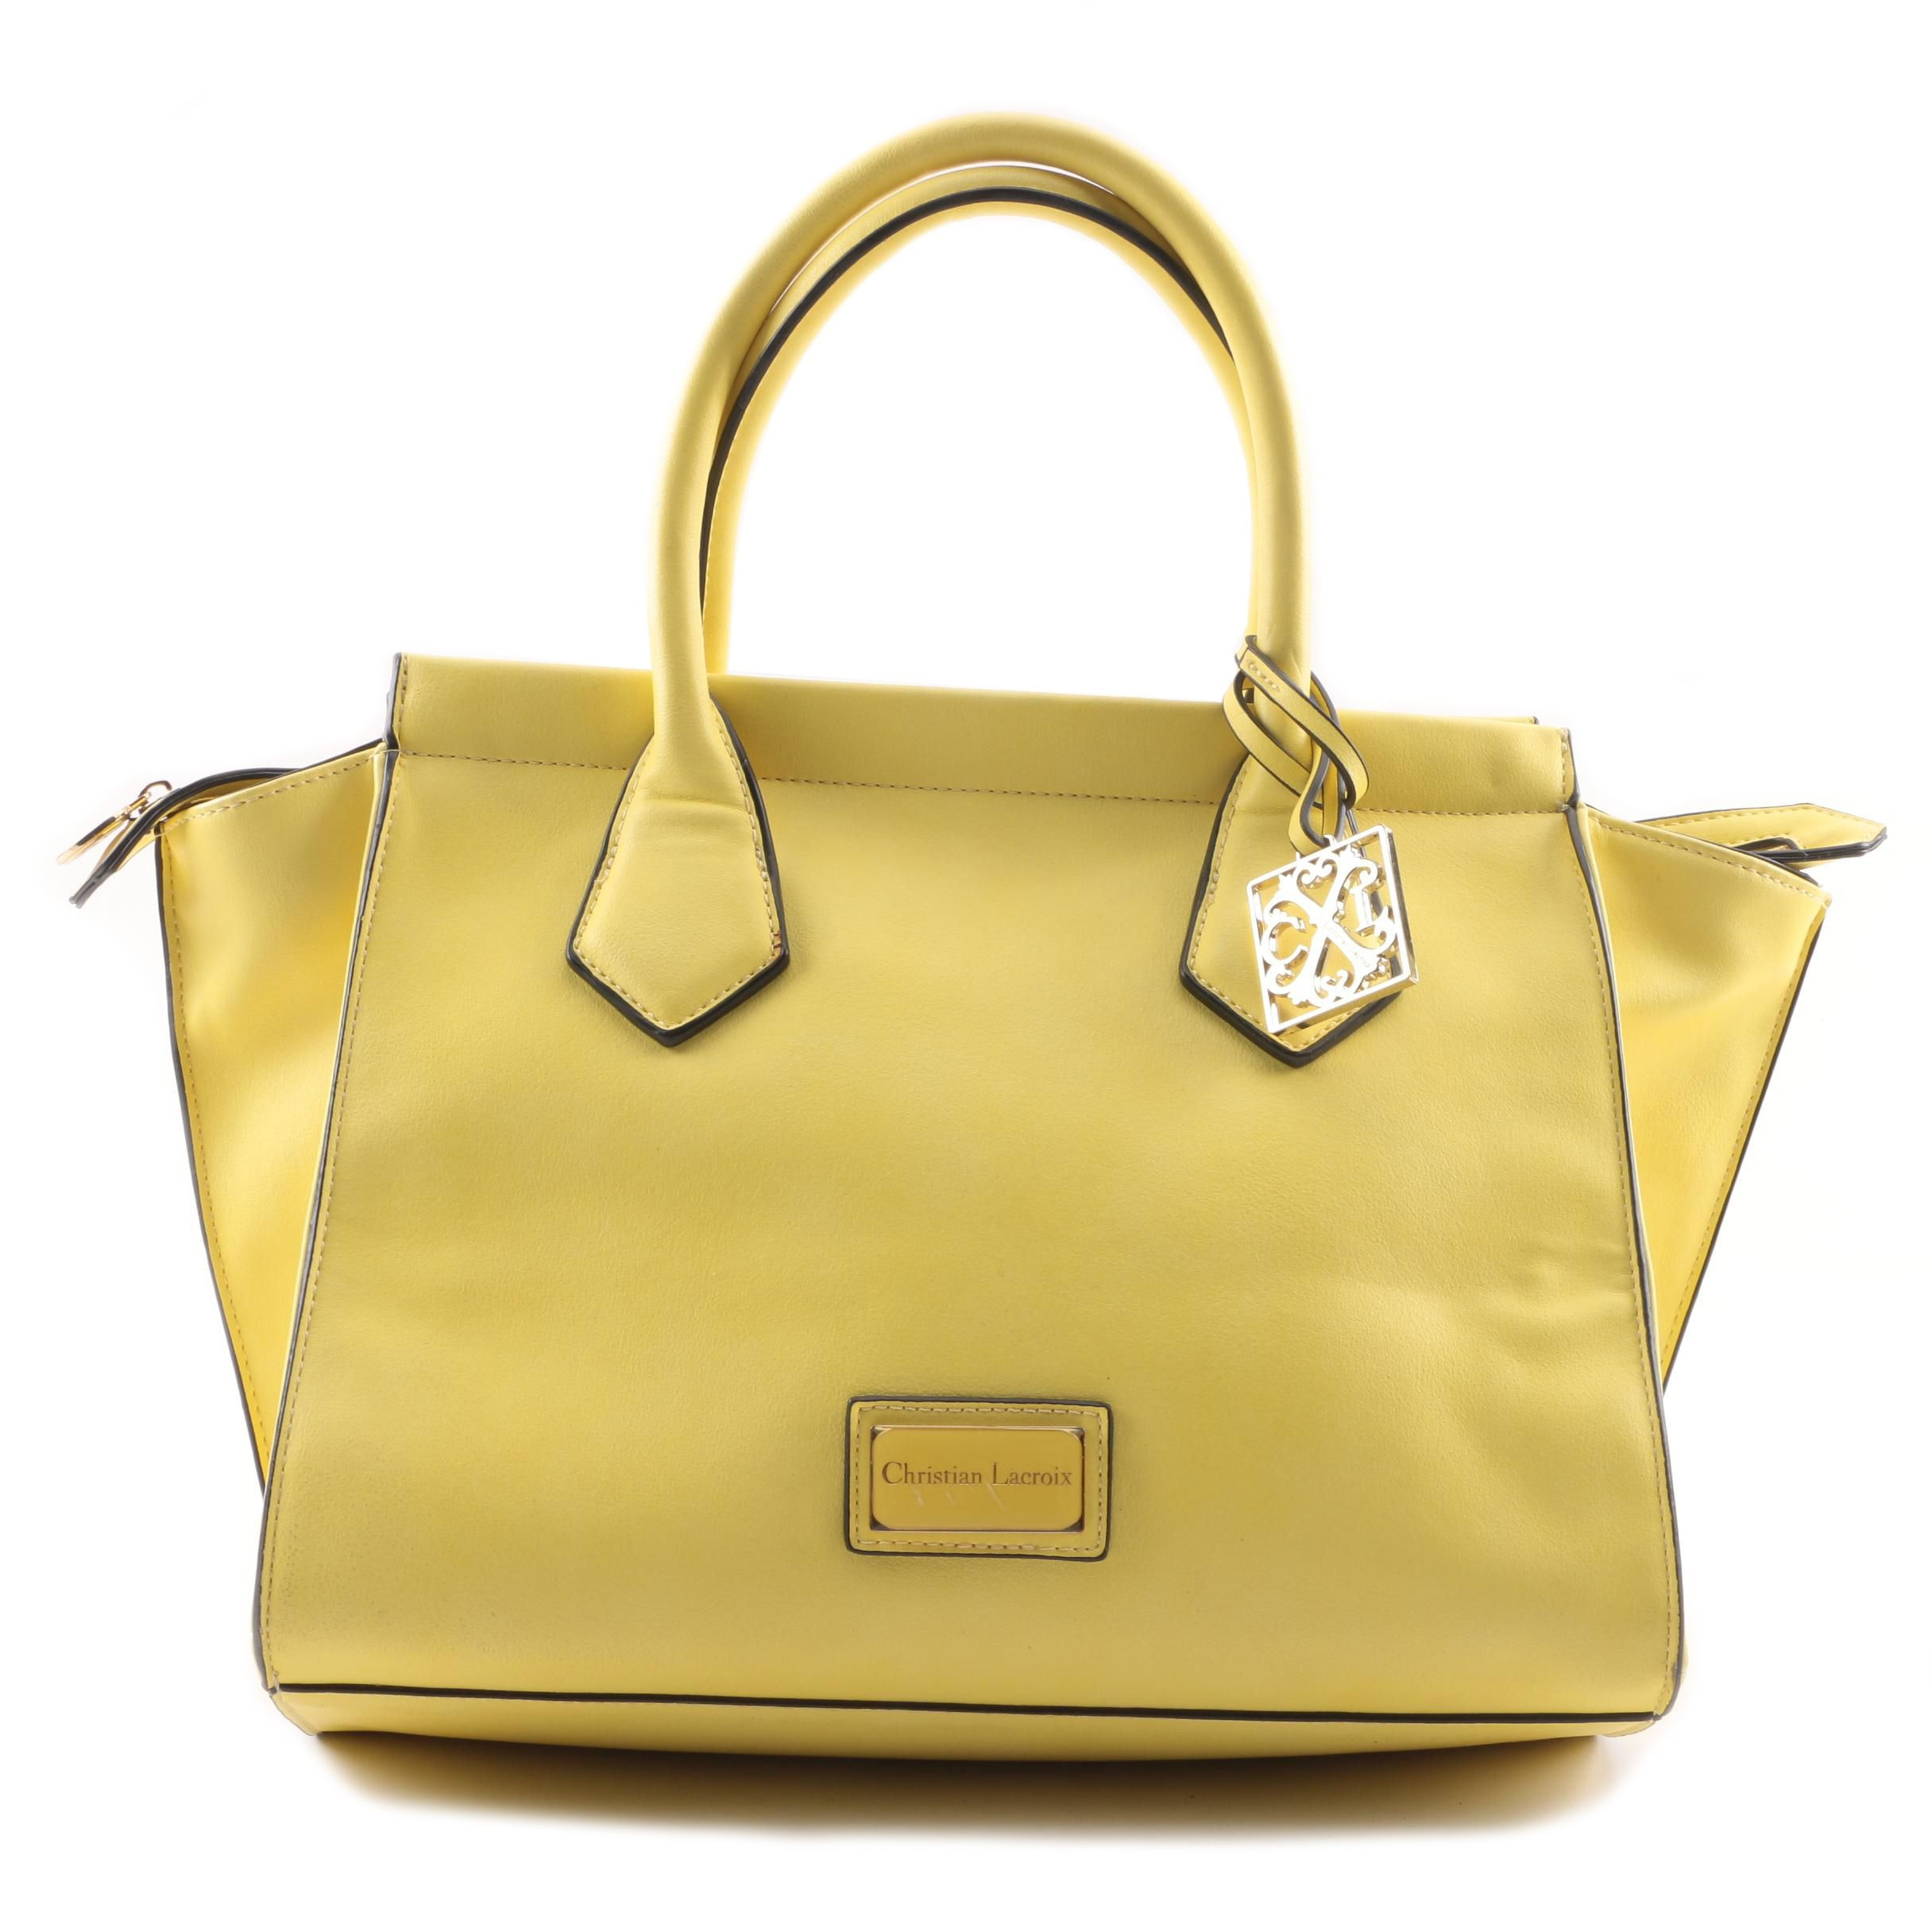 Christian Lacroix Yellow Faux Leather Trapeze Bag